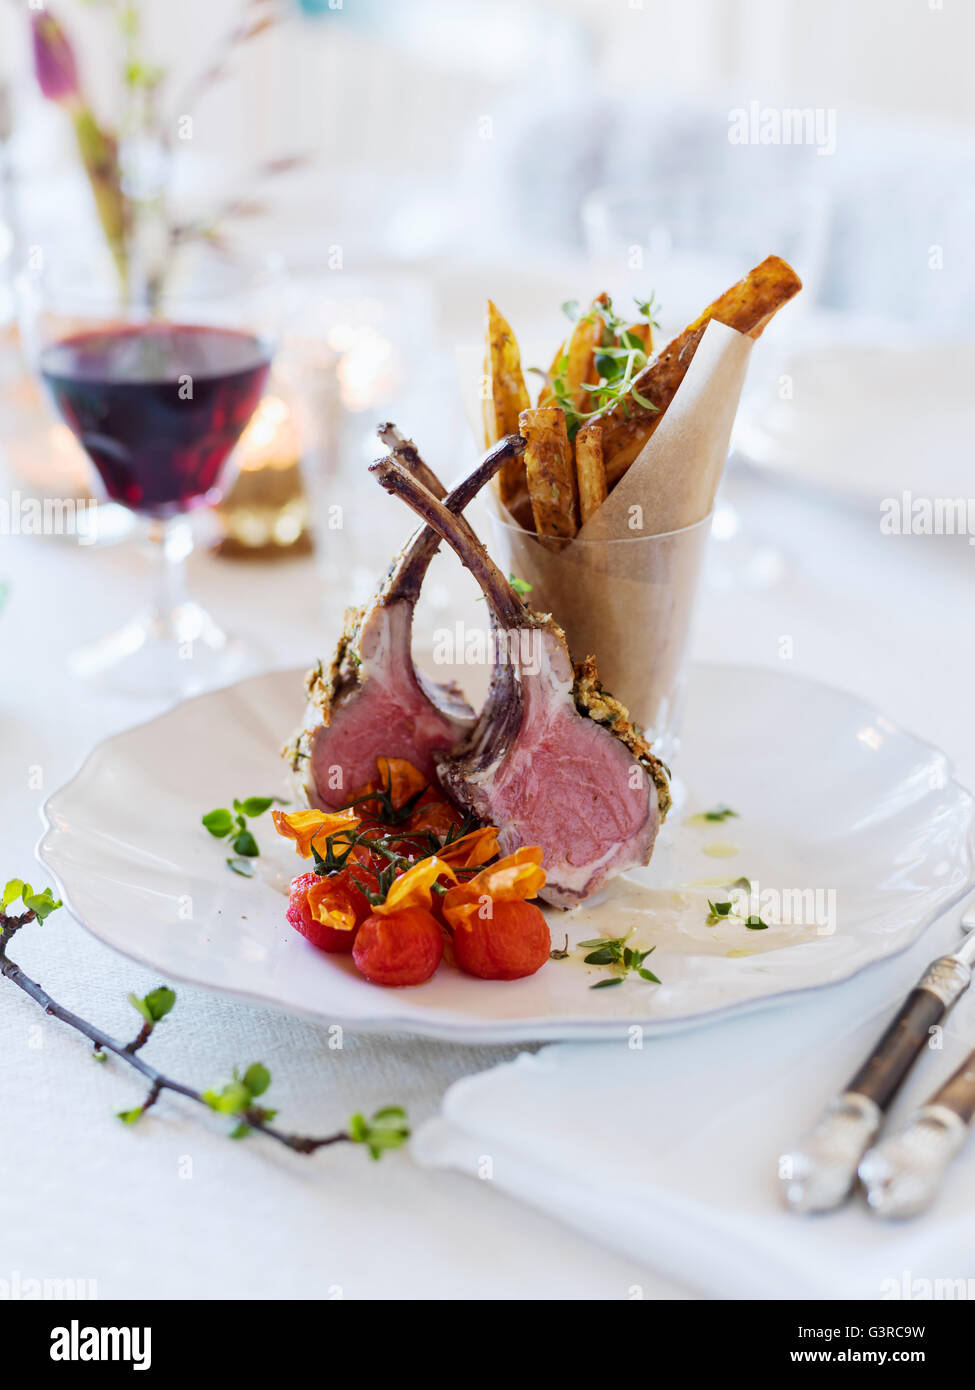 Sweden, Lamb chops and french fries on table Stock Photo